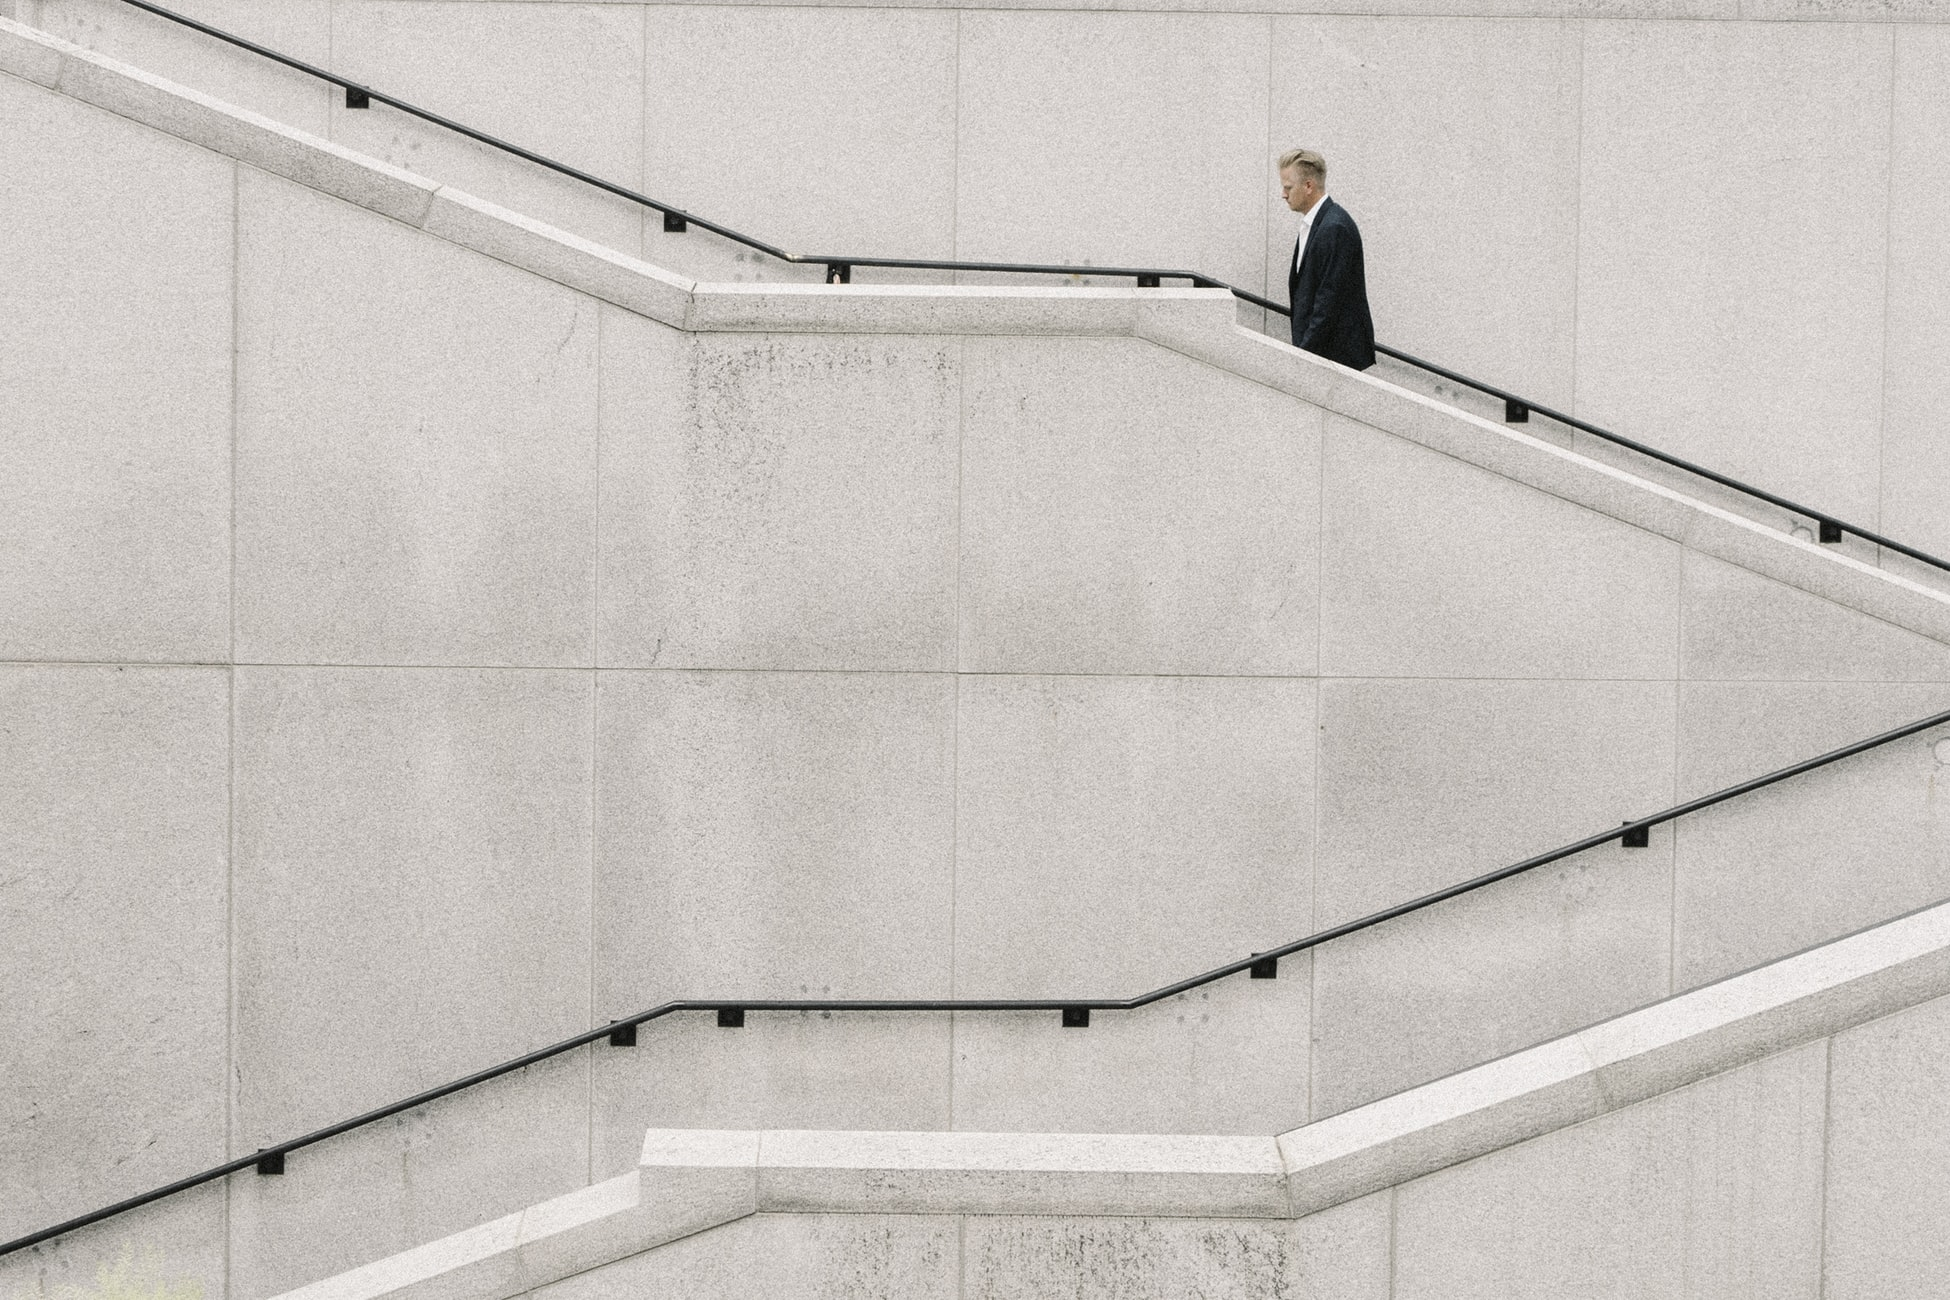 Man in black suit climbing concrete stairs